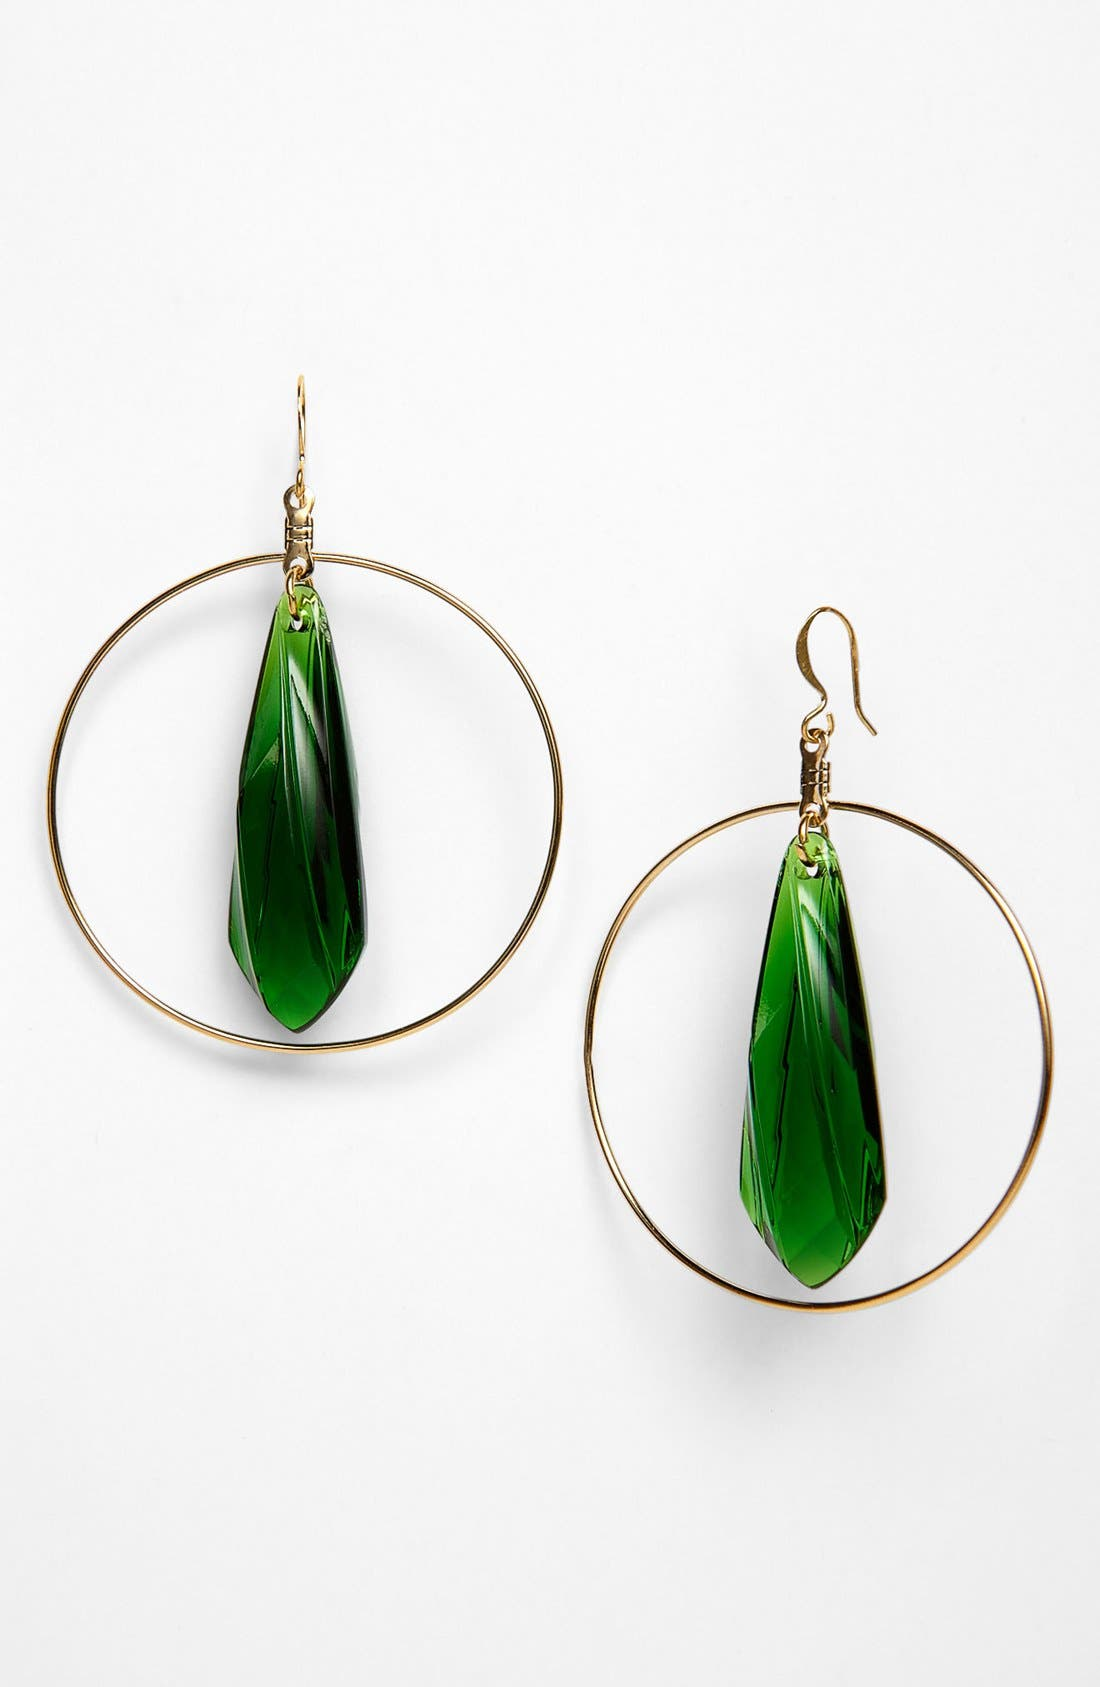 Main Image - Verdier Jewelry 'Vintage Lucite®' Hoop Earrings